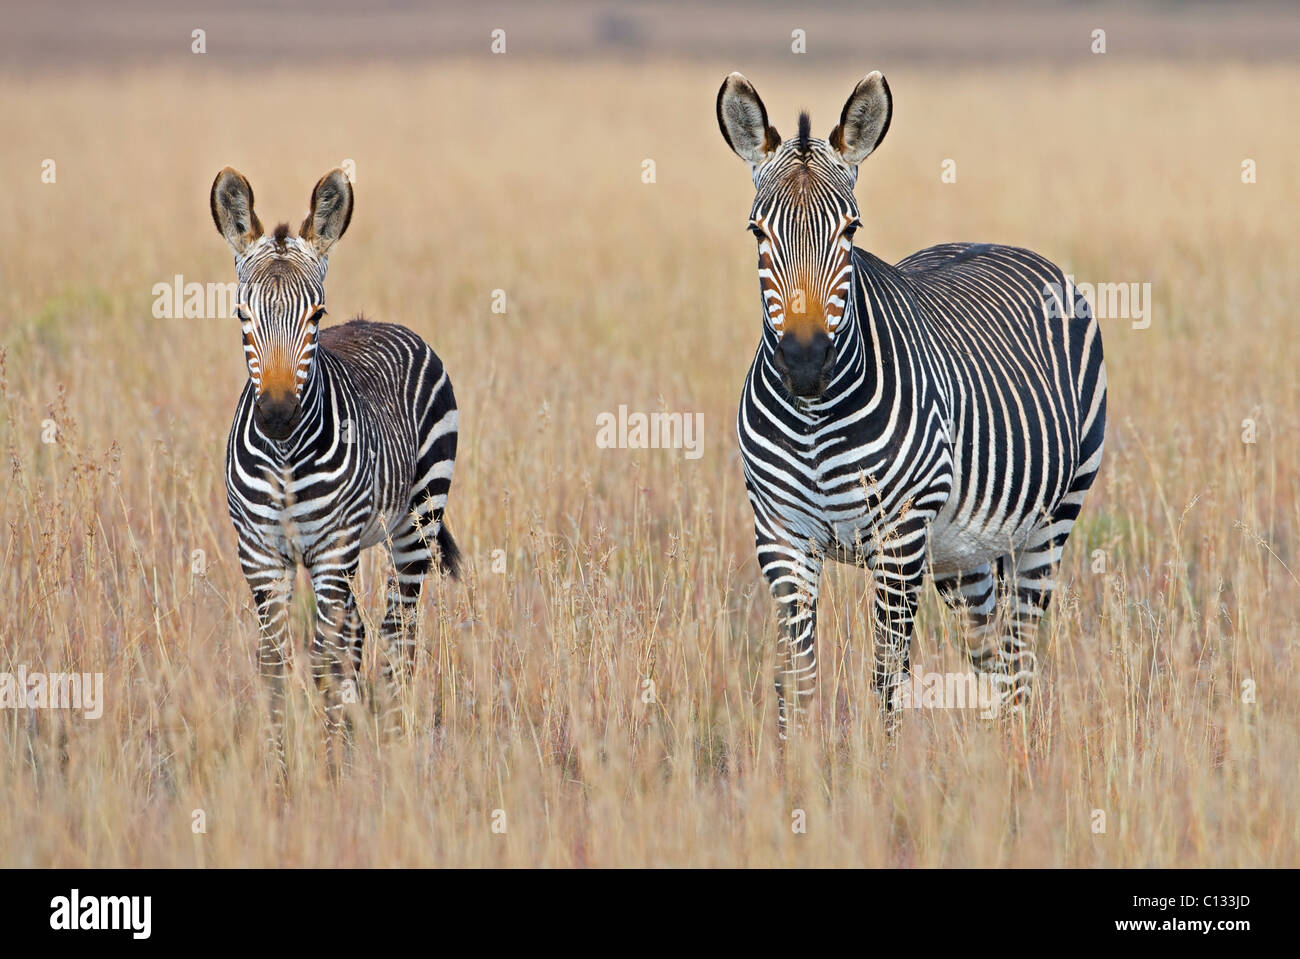 Plains zebra (Equus quagga) with foal in grasslands, Mountain Zebra National Park, Eastern Cape Province, South - Stock Image